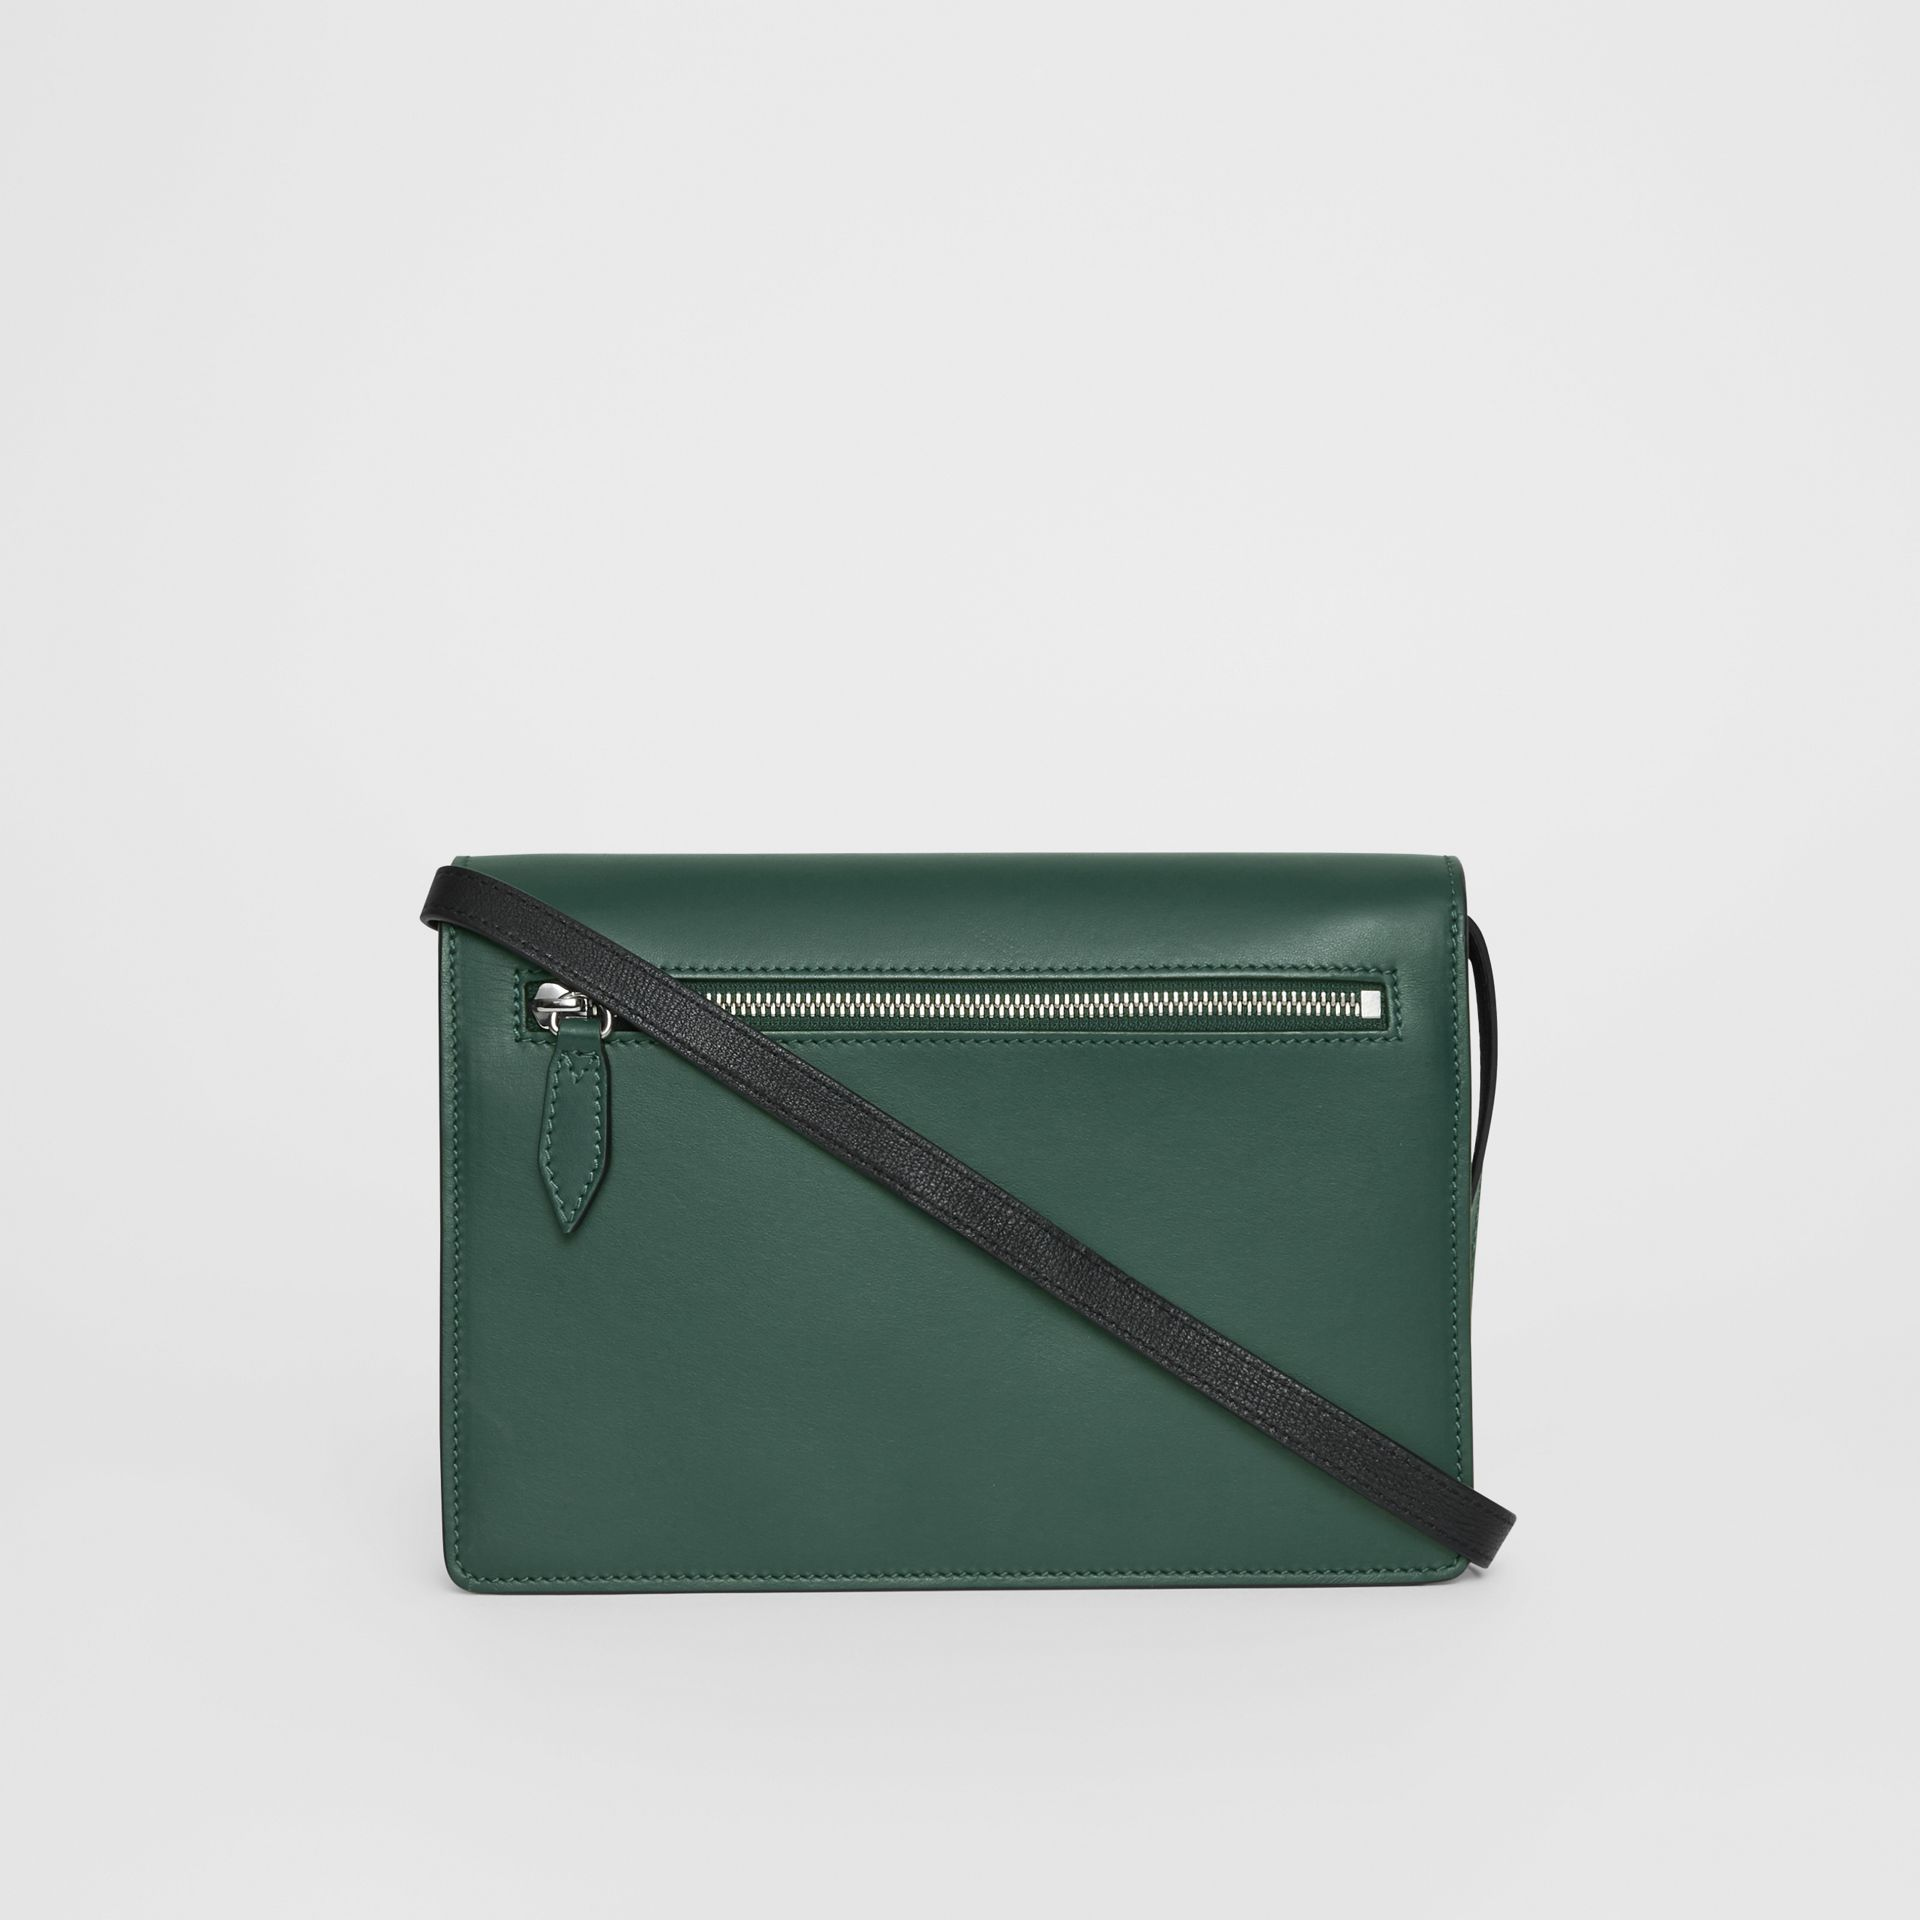 Two-tone Leather Crossbody Bag in Black/sea Green - Women | Burberry United Kingdom - gallery image 7